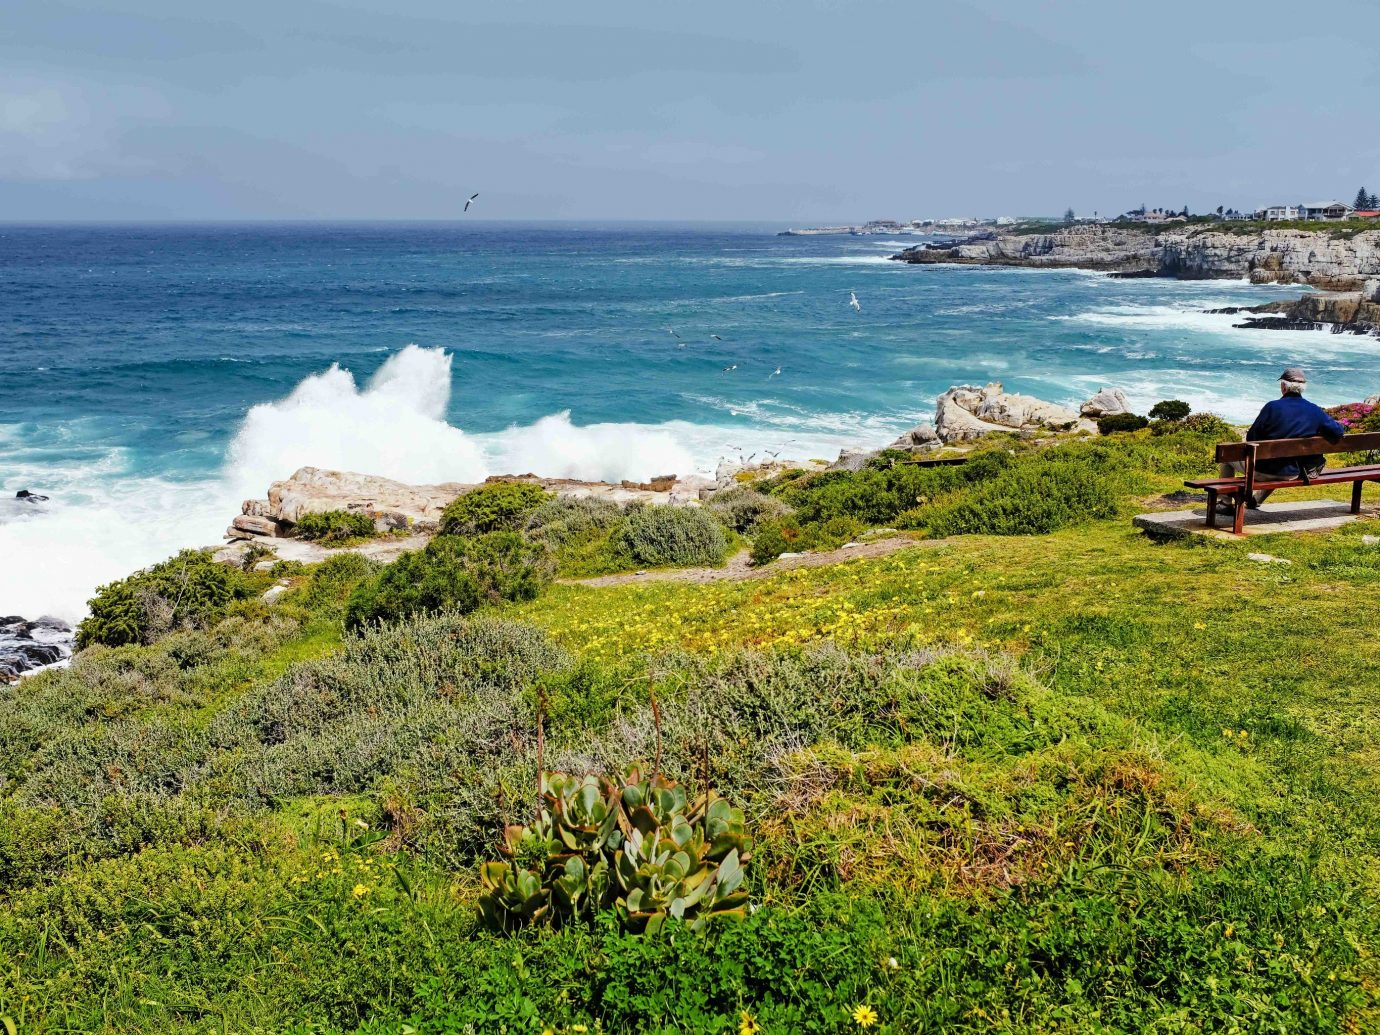 Hermanus Coast Sea shore promontory Beach Ocean sky coastal and oceanic landforms cape terrain bay headland tourism grass wave tropics landscape